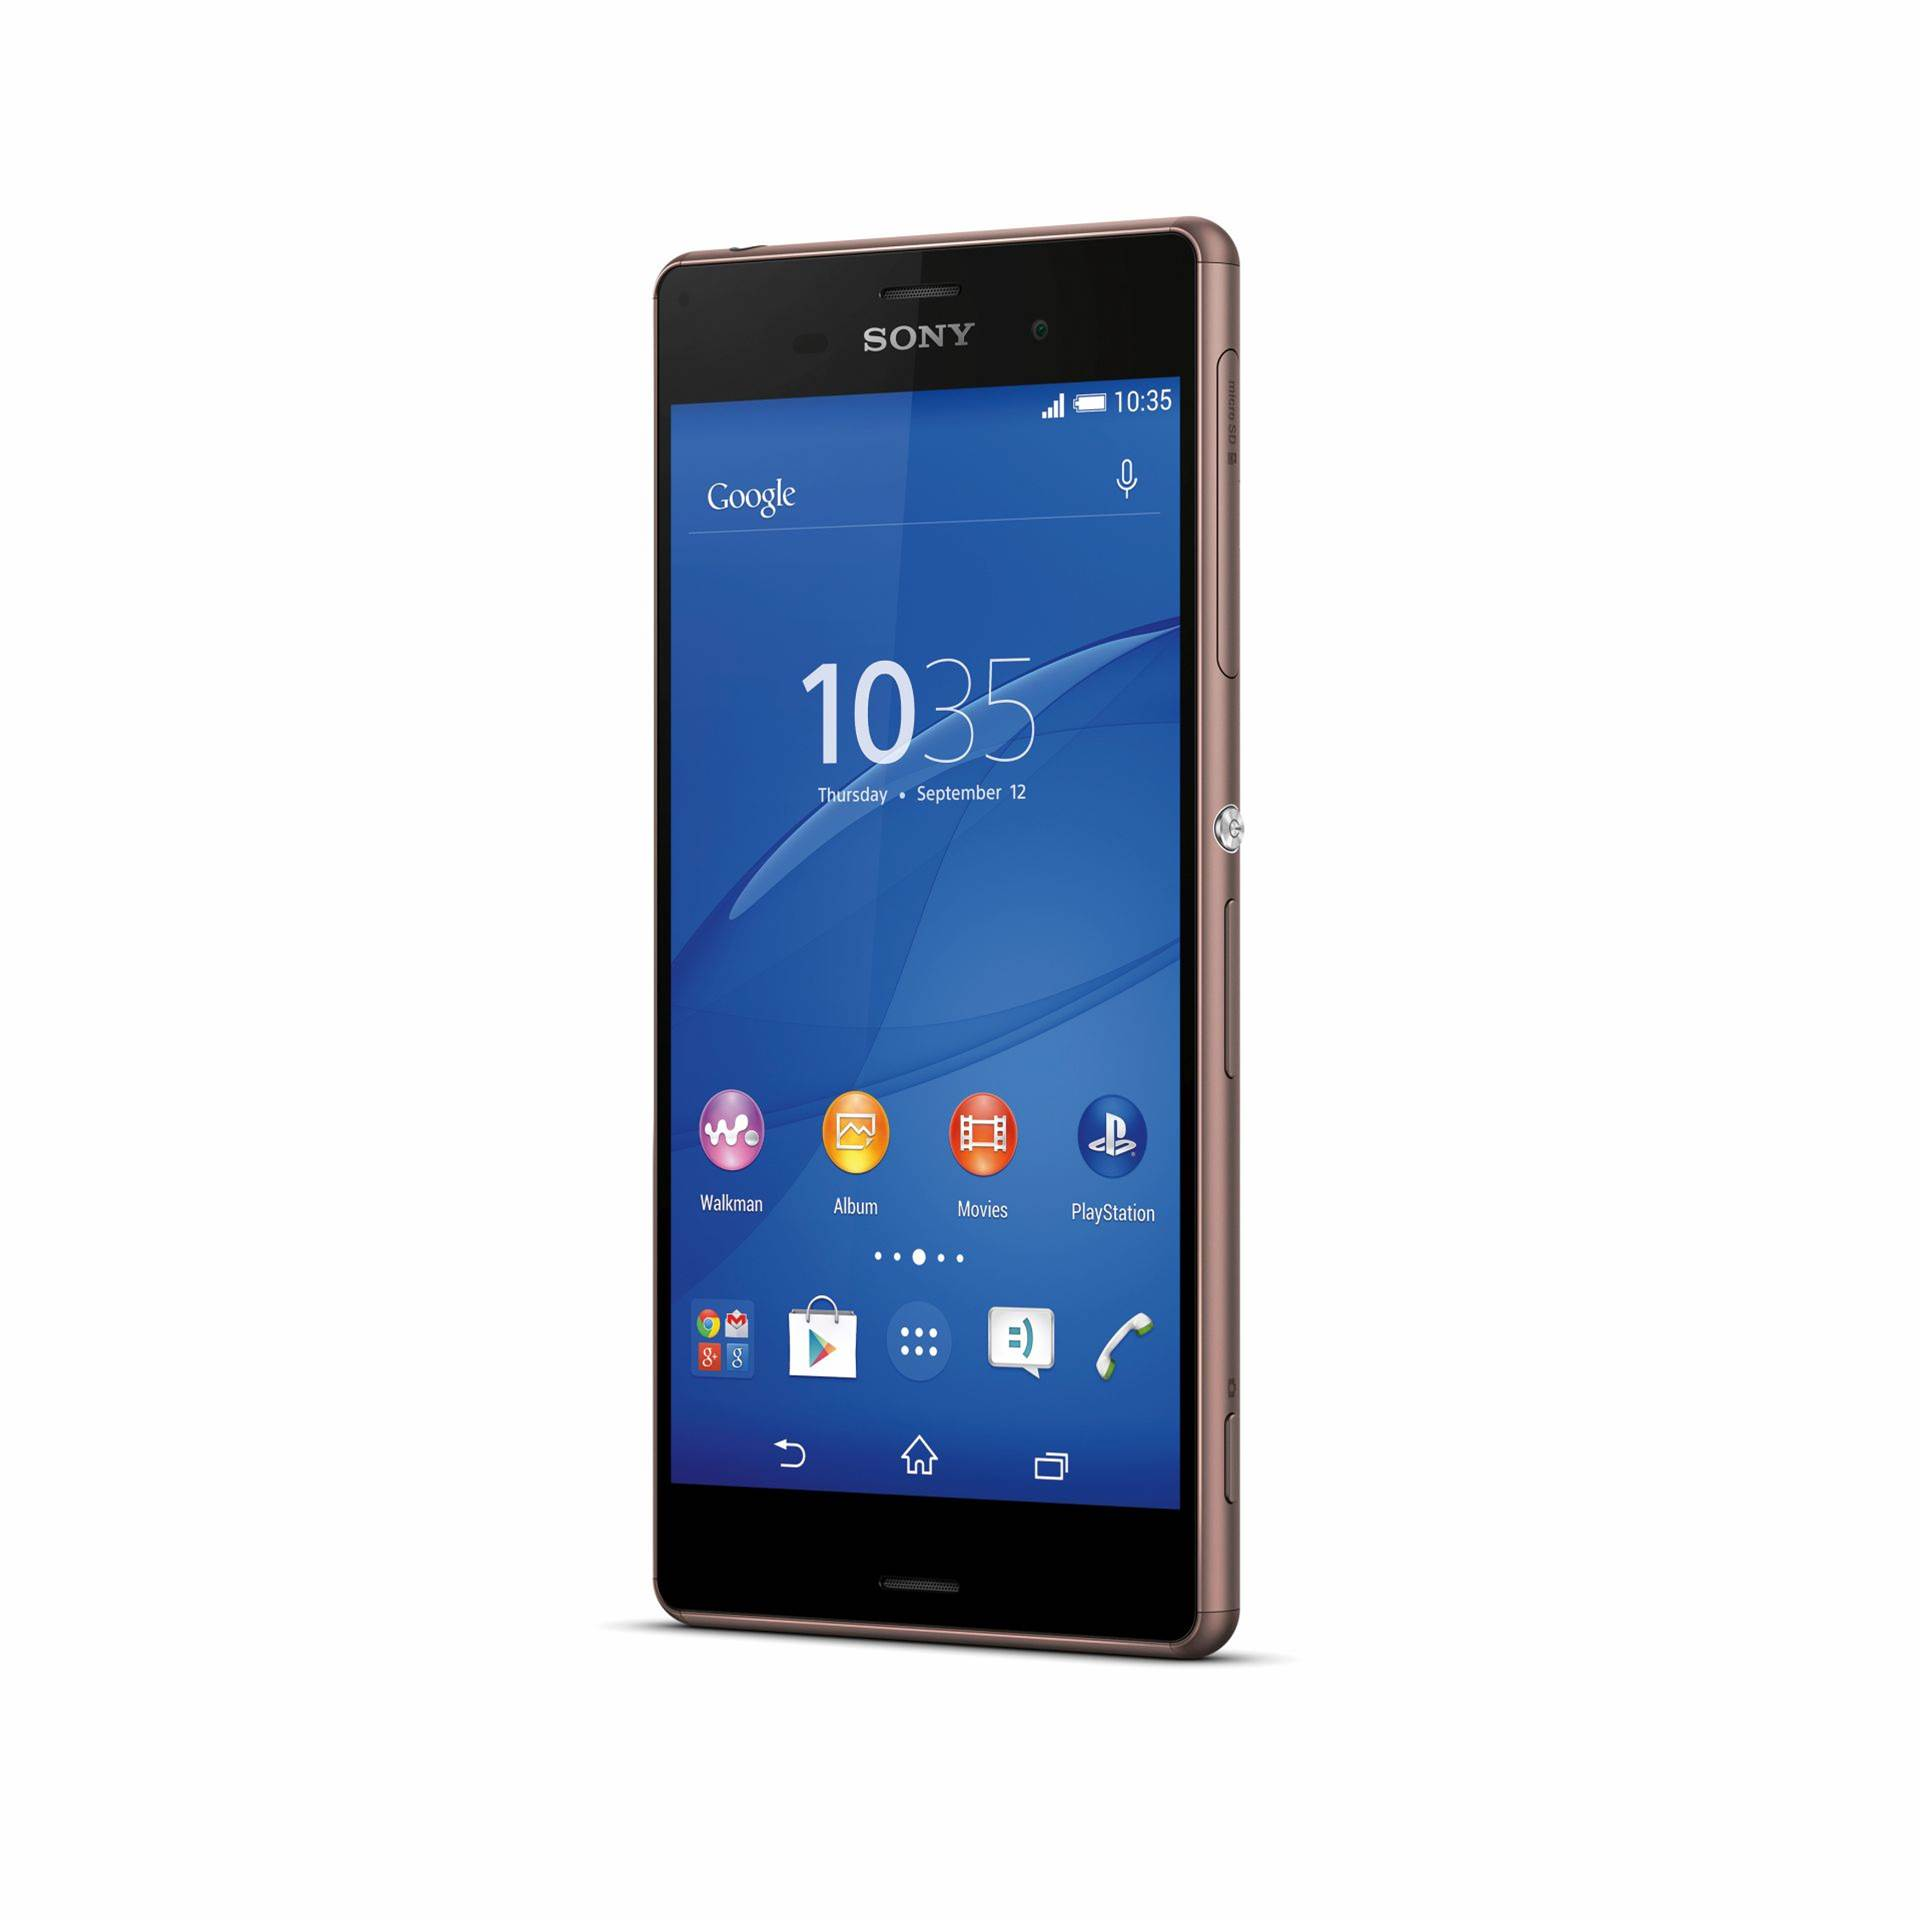 Review: Sony Xperia Z3 Compact